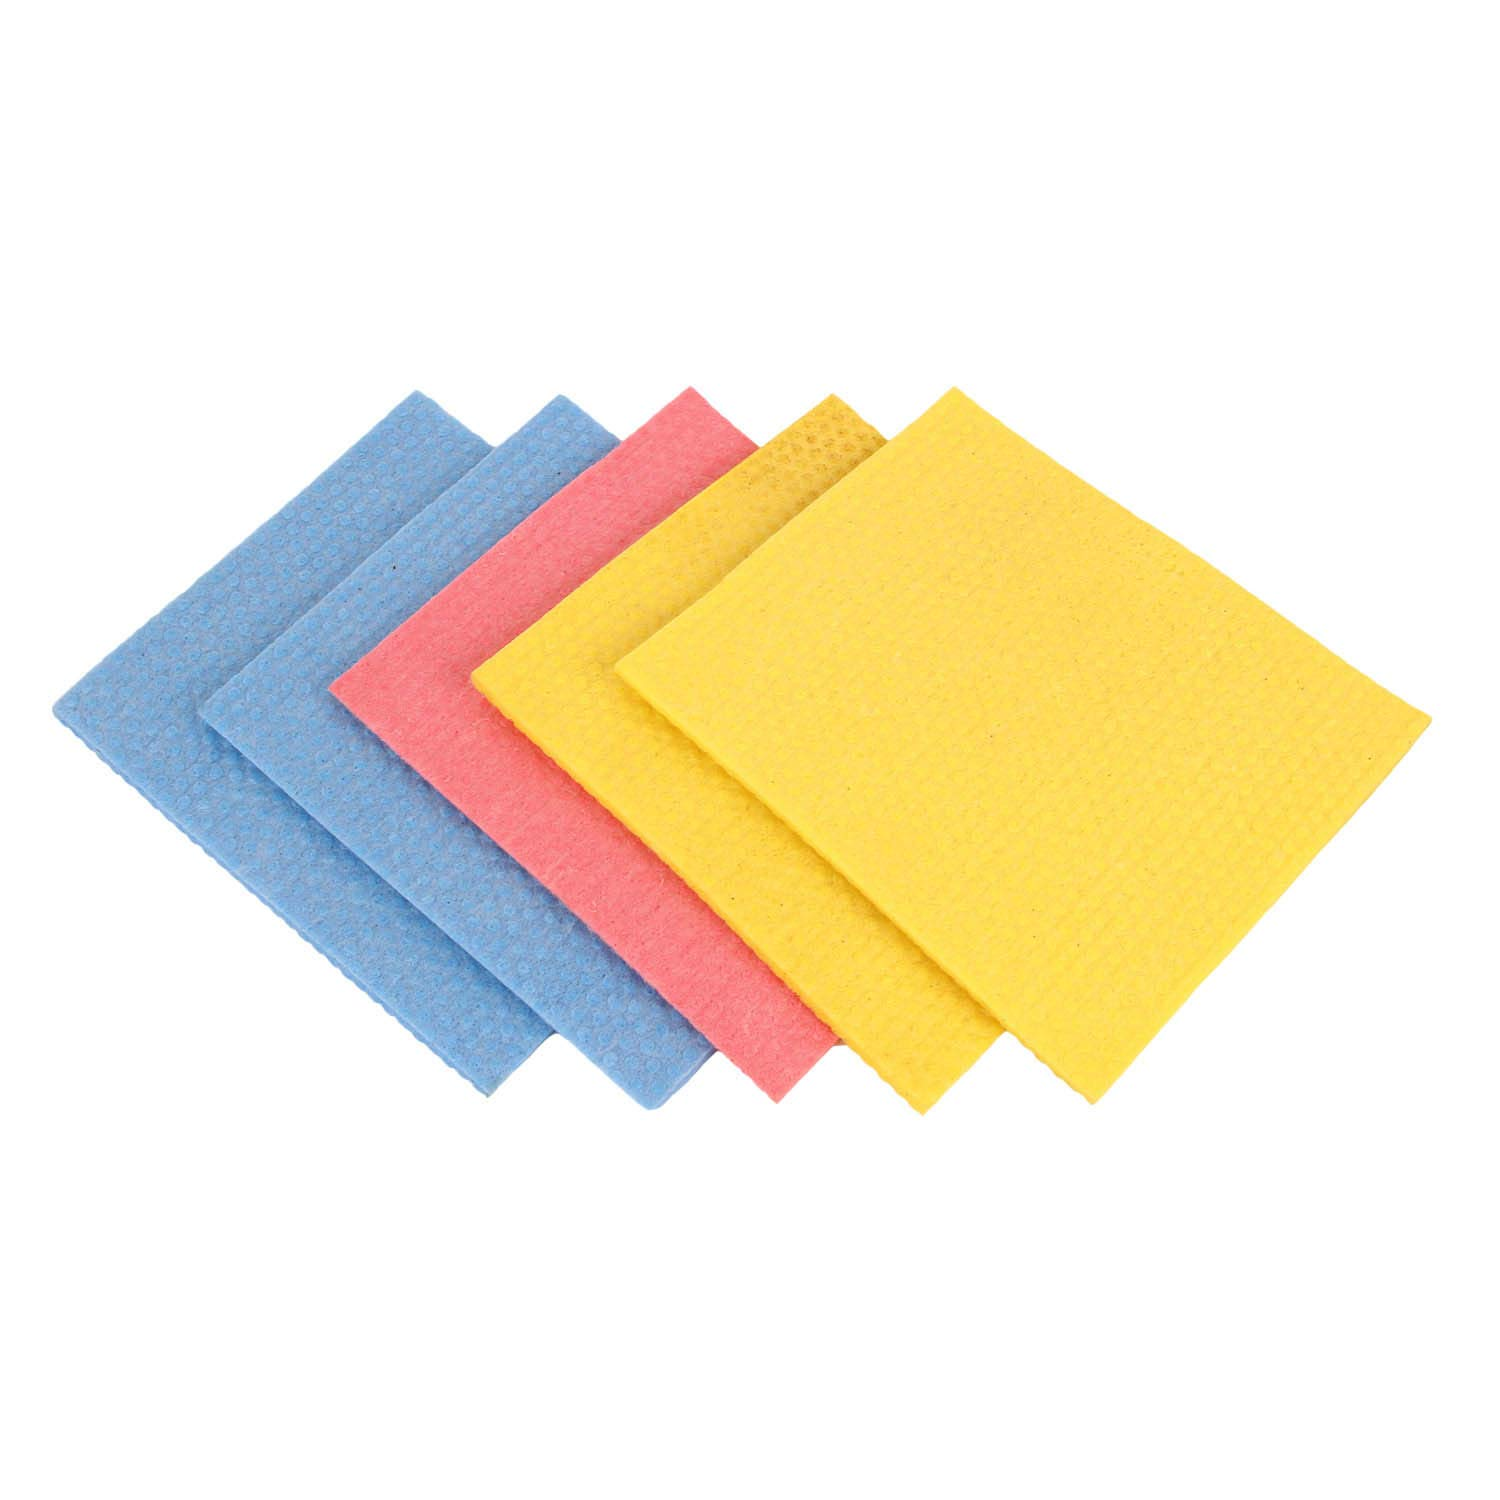 Amazon price history for 5pc Set Kitchen Sponge Wipe/All Surface Sponge Cloth Made of 100% Biodegradable Cellulose